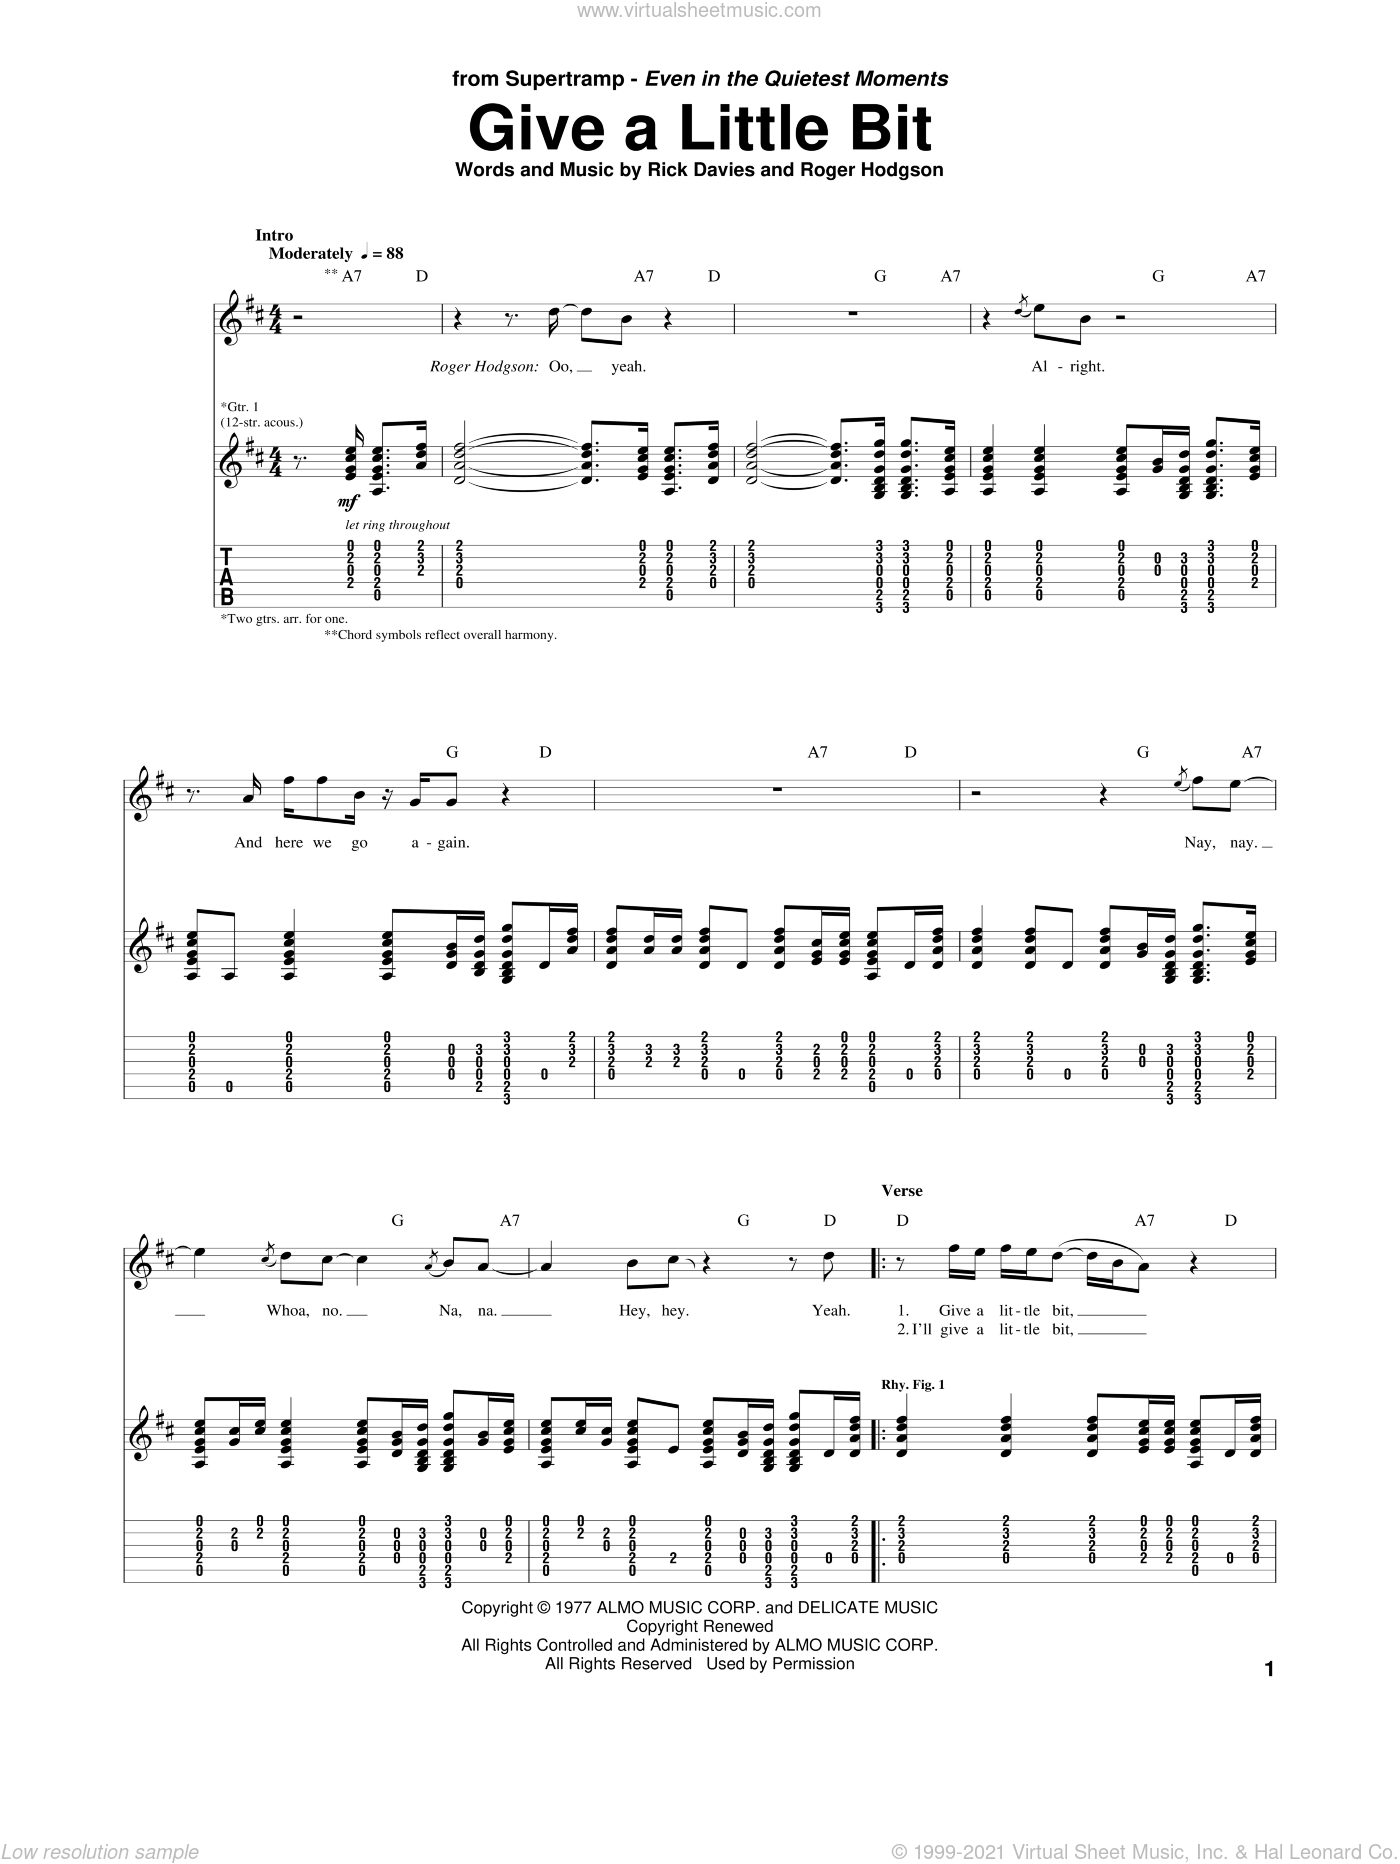 Give A Little Bit sheet music for guitar (tablature) by Supertramp, Rick Davies and Roger Hodgson, intermediate skill level